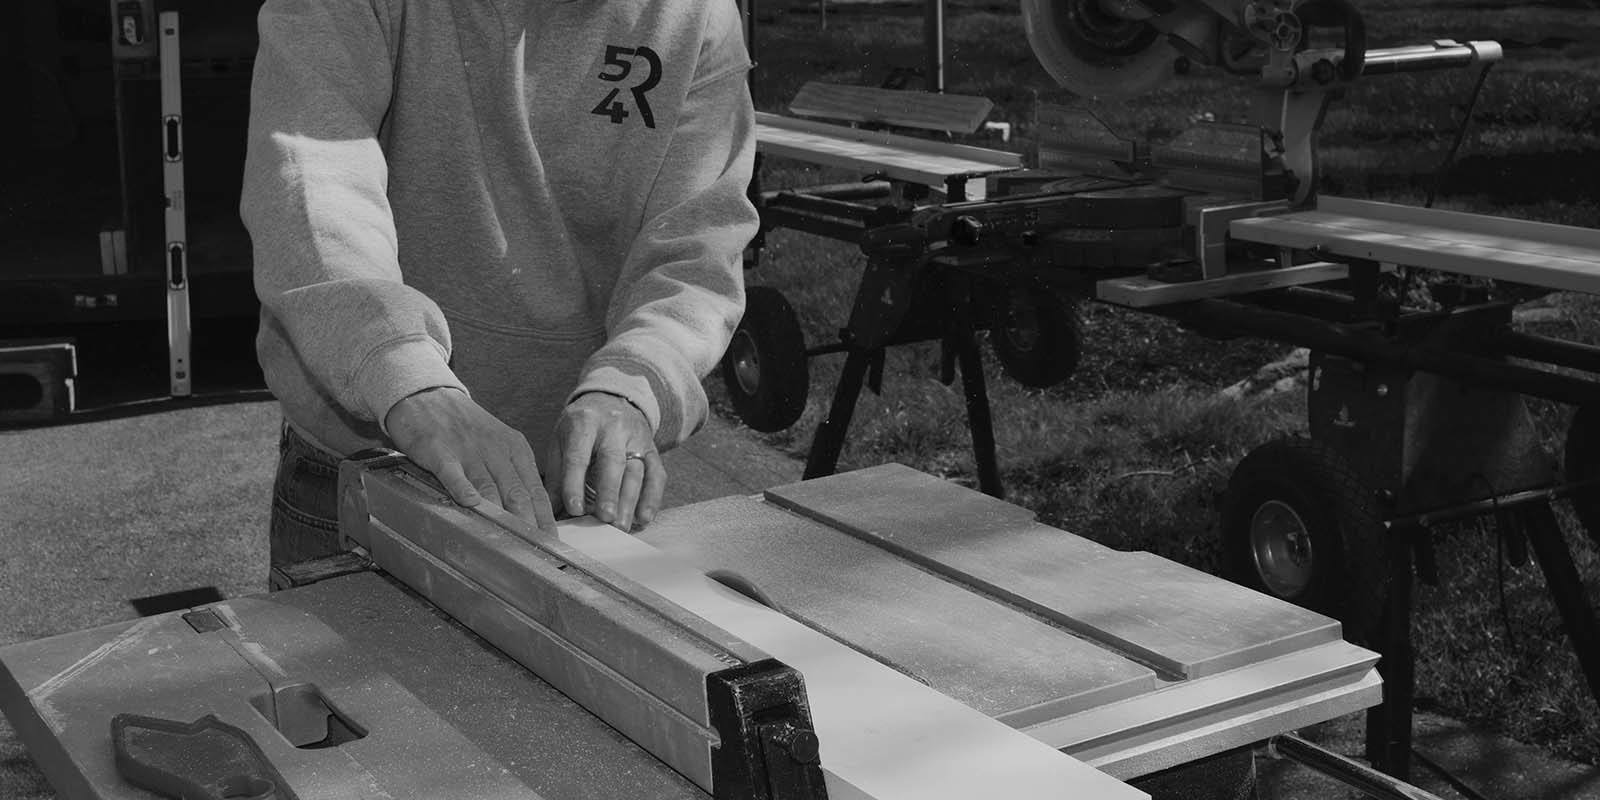 carpenter using table saw